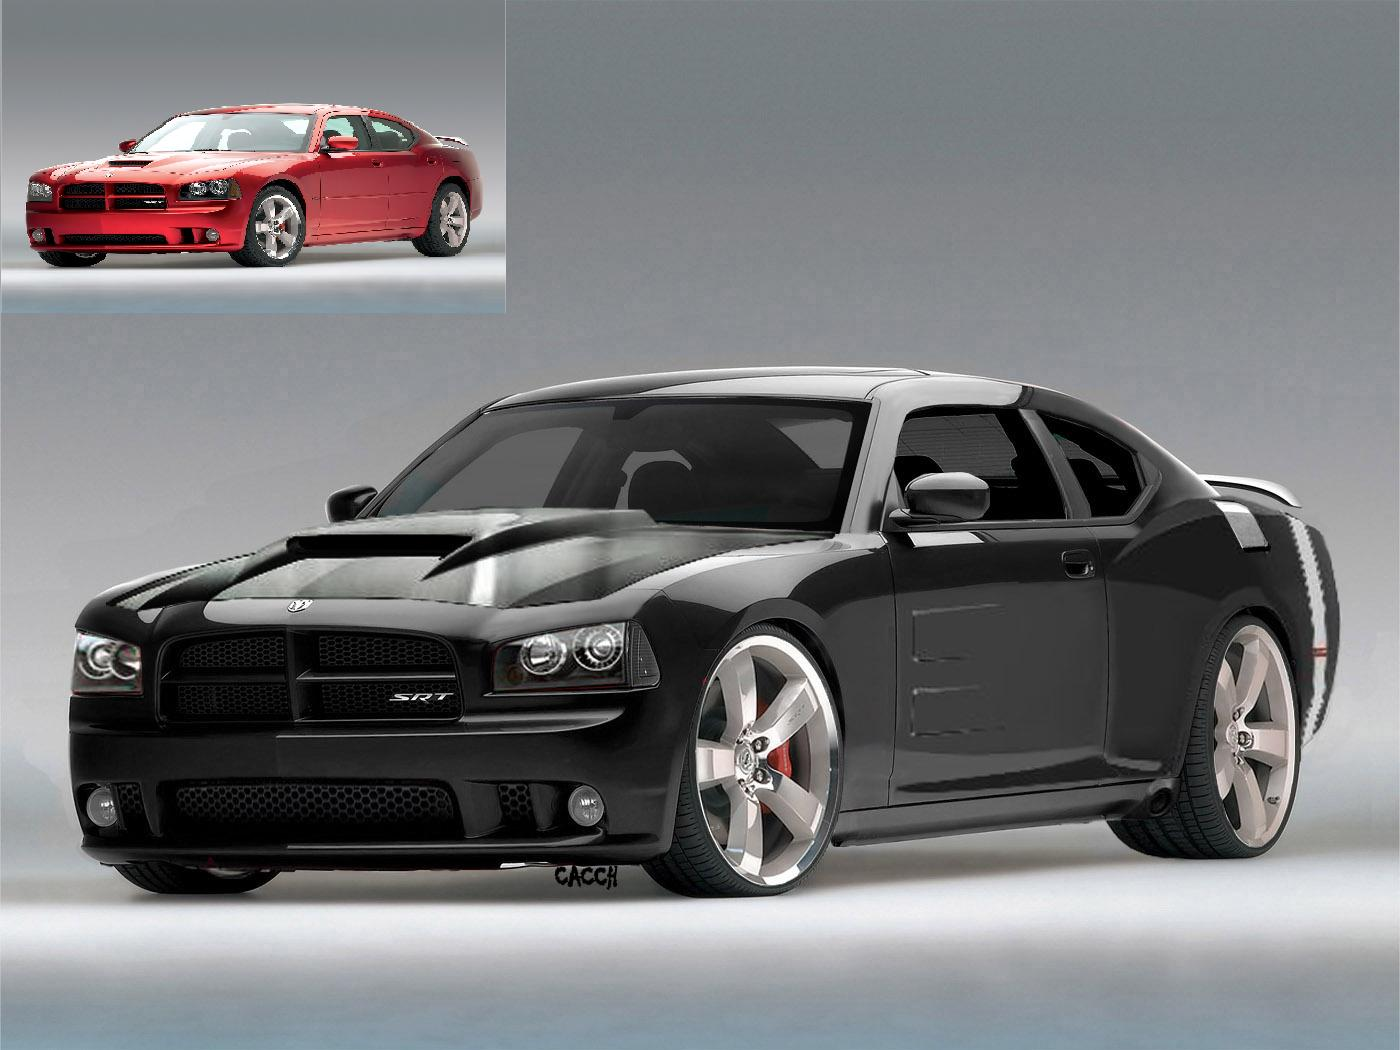 topworldauto photos of dodge charger srt 10 photo galleries. Black Bedroom Furniture Sets. Home Design Ideas